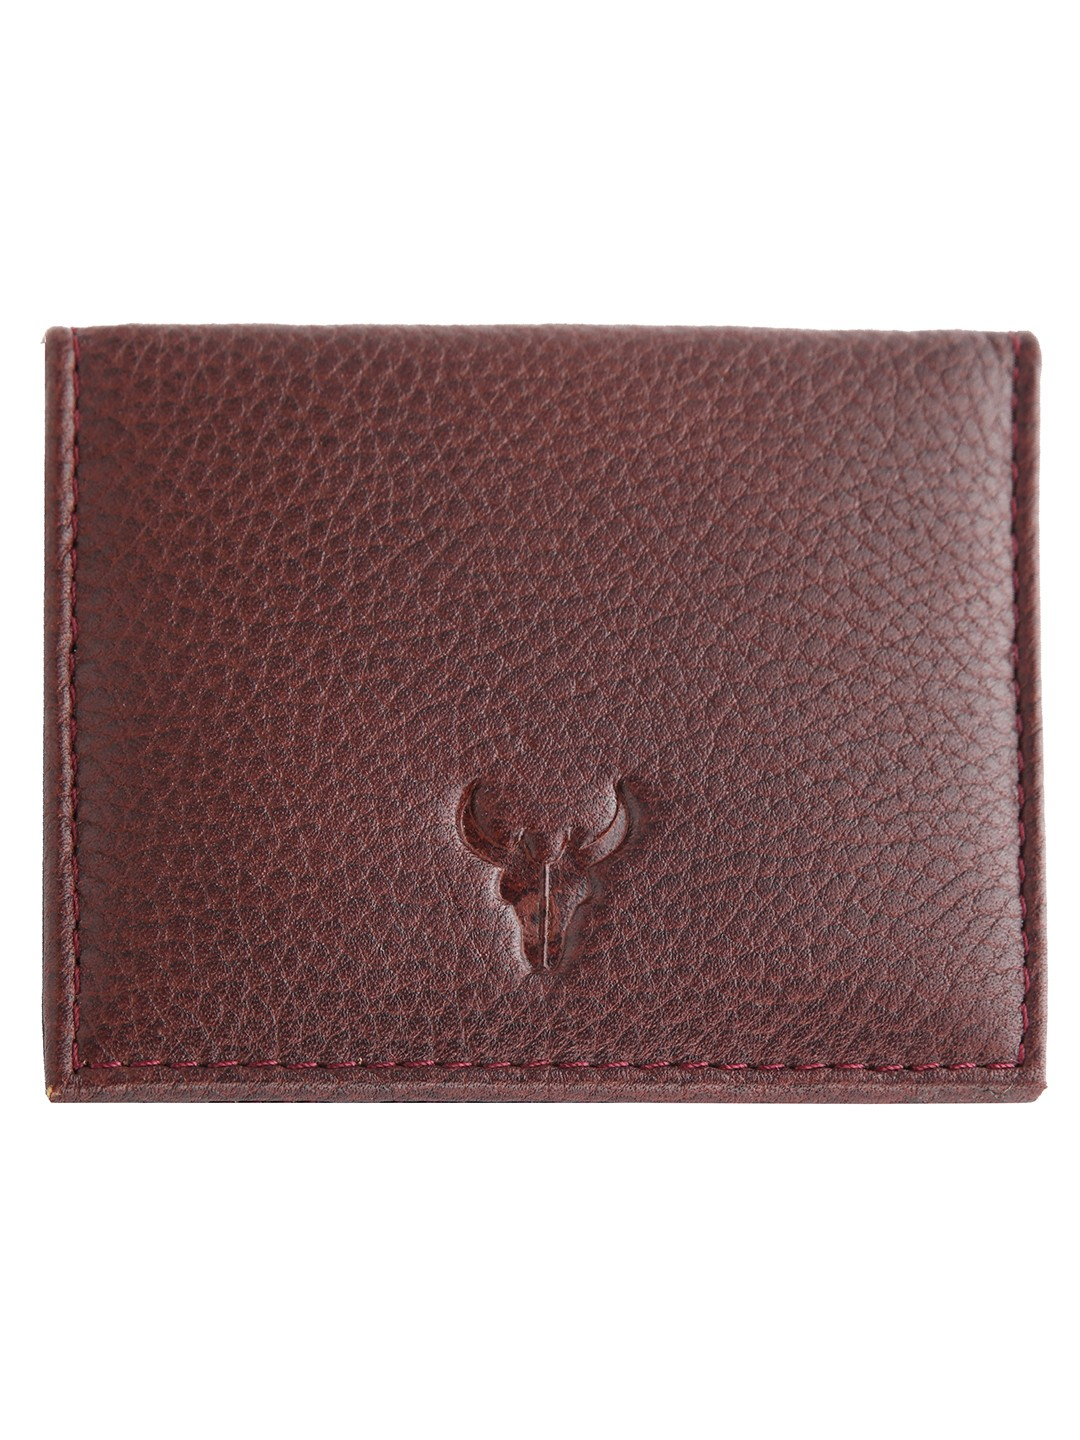 Napa Hide | Napa Hide RFID Protected Genuine High Quality Leather Maroon Wallet for Men